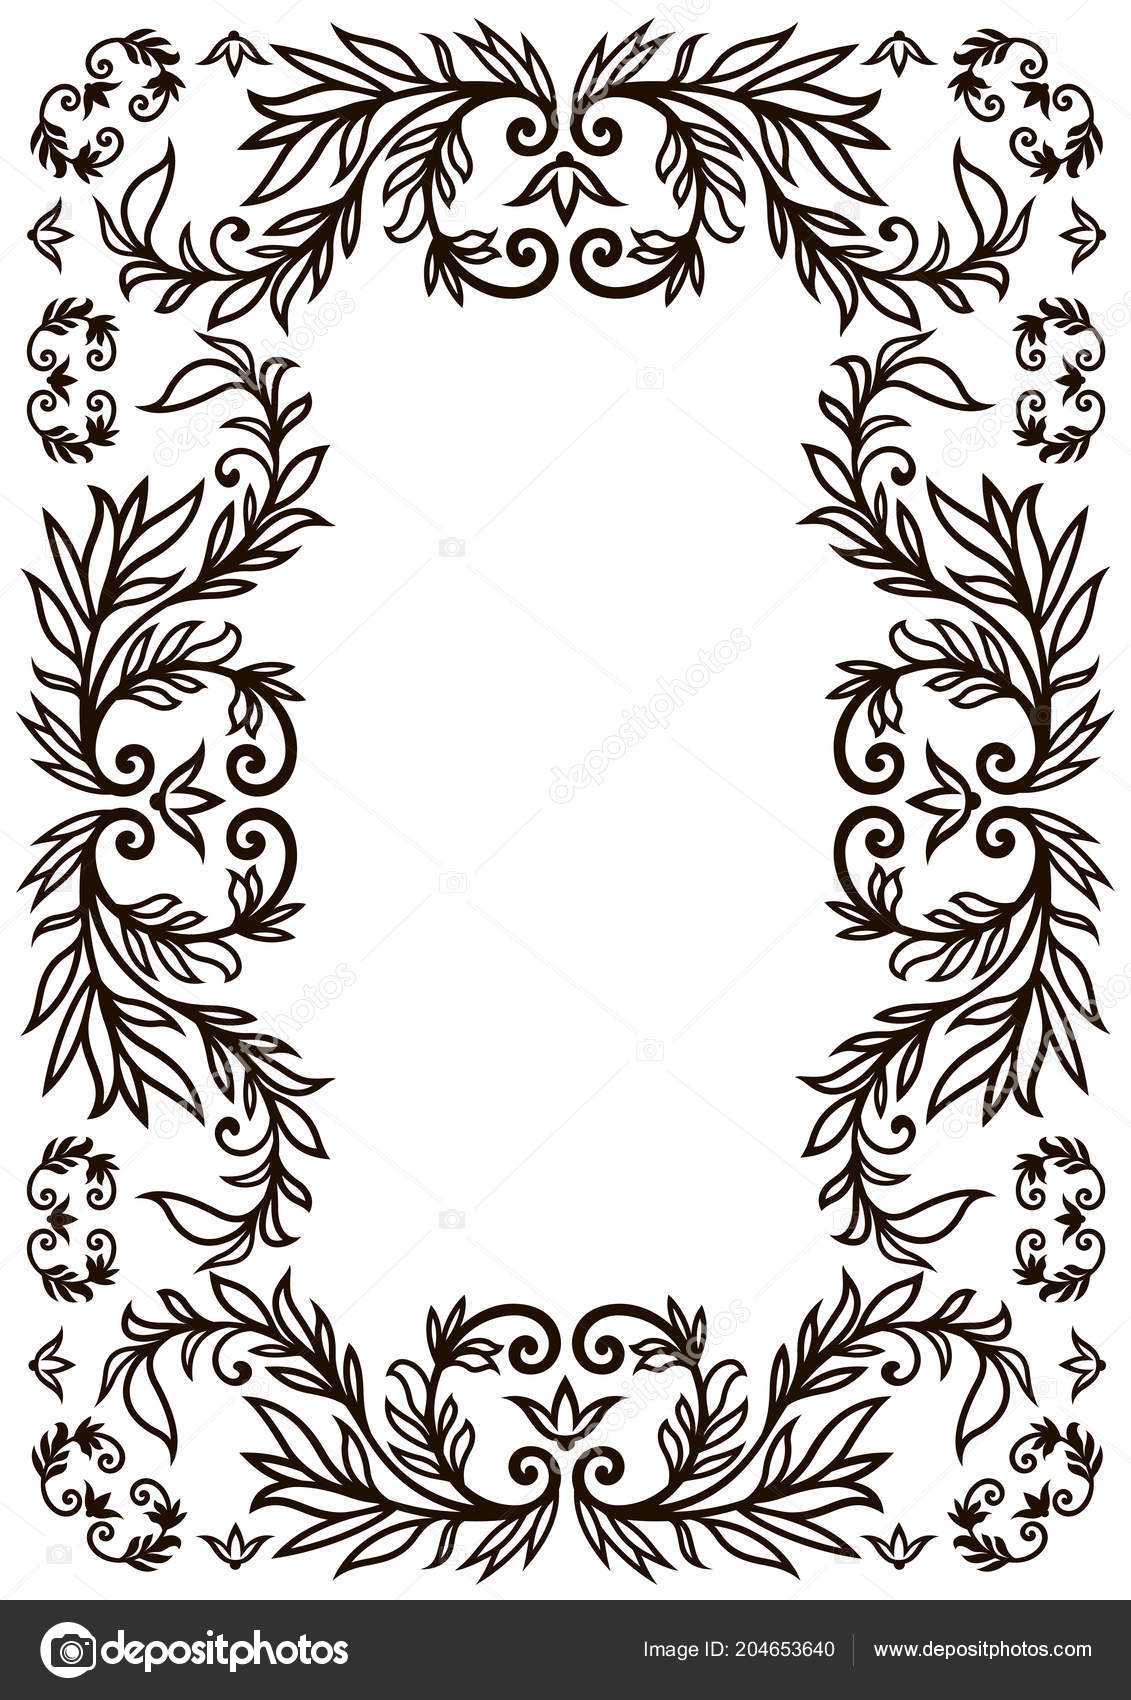 Frame border design template black white decorative vector border frame border design template black and white decorative vector border on white blank background for certificate invitation document menu etc stopboris Image collections